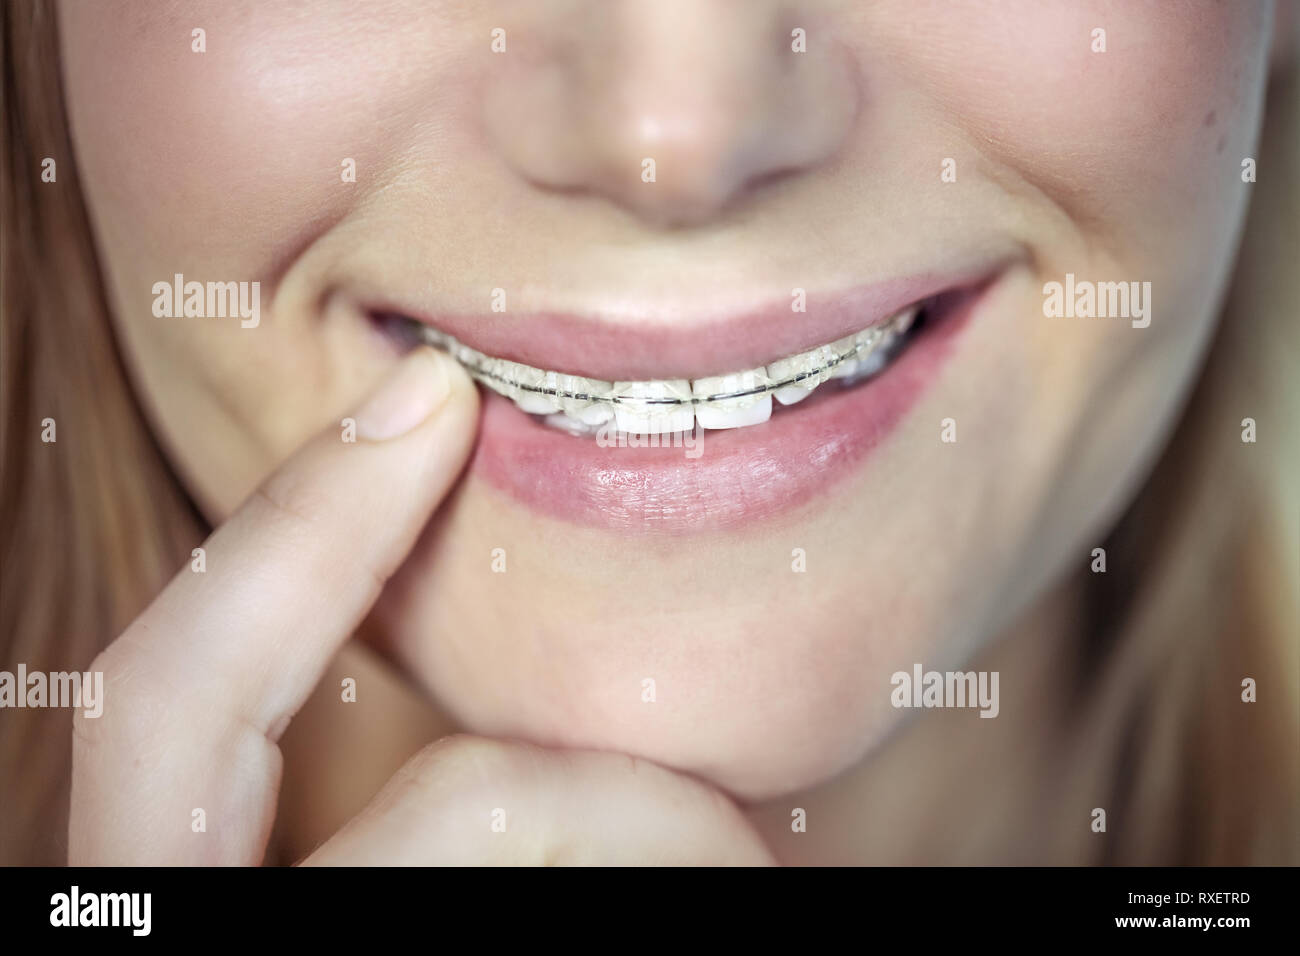 Closeup photo of a beautiful smile of a teen girl with braces, aesthetic dentistry, contemporary fixing of the teeth, health and dental care - Stock Image